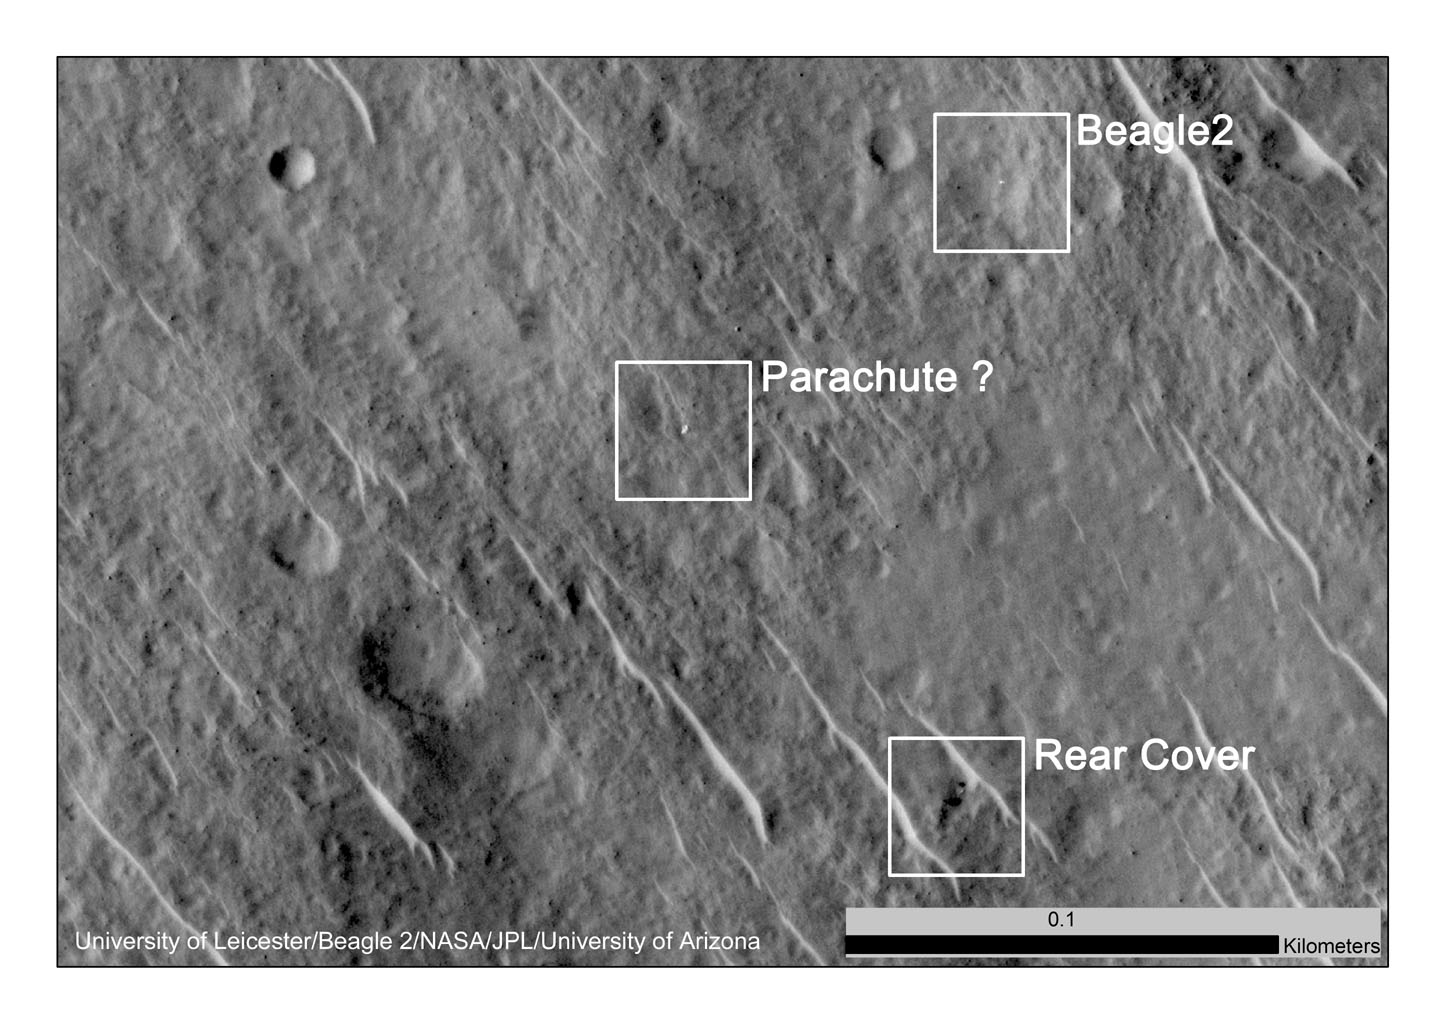 This annotated image, taken in 2014, shows where features seen in an observation by NASA's Mars Reconnaissance Orbiter have been interpreted as hardware from the Dec. 25, 2003, arrival at Mars of the United Kingdom's Beagle 2 Lander.